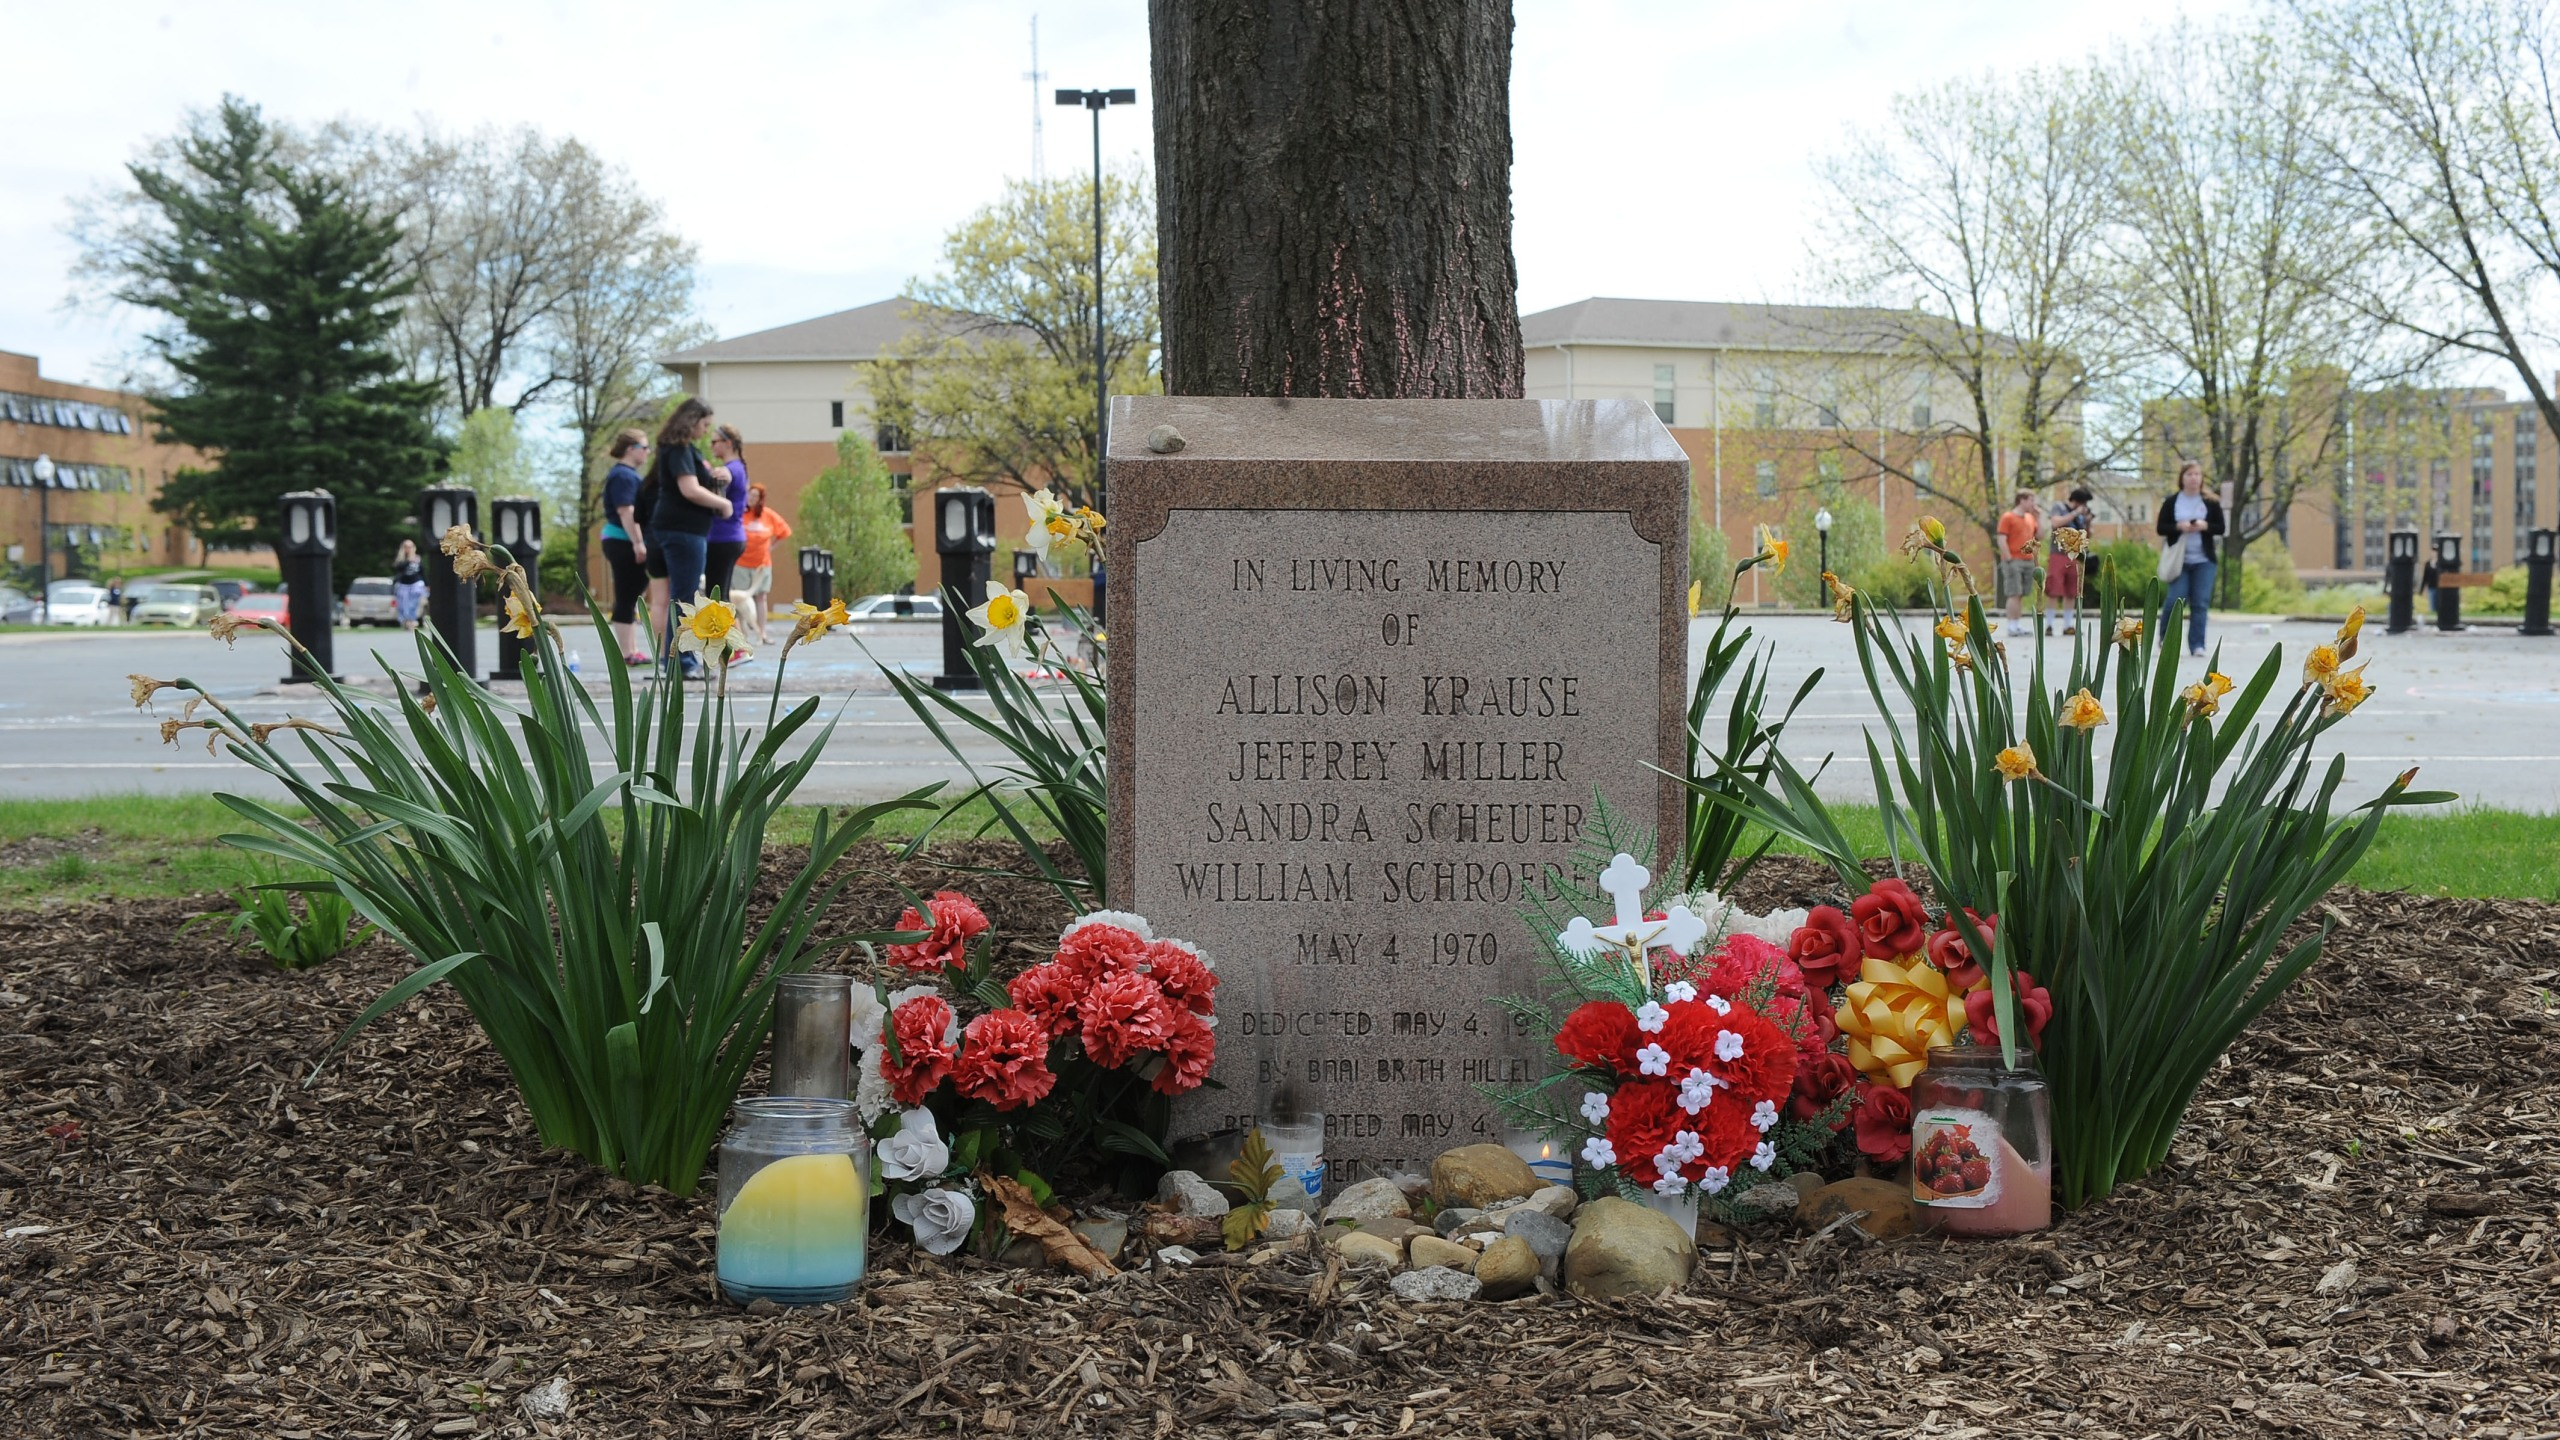 A marker to the four students who were killed on May 4, 1970 is surrounded by flowers